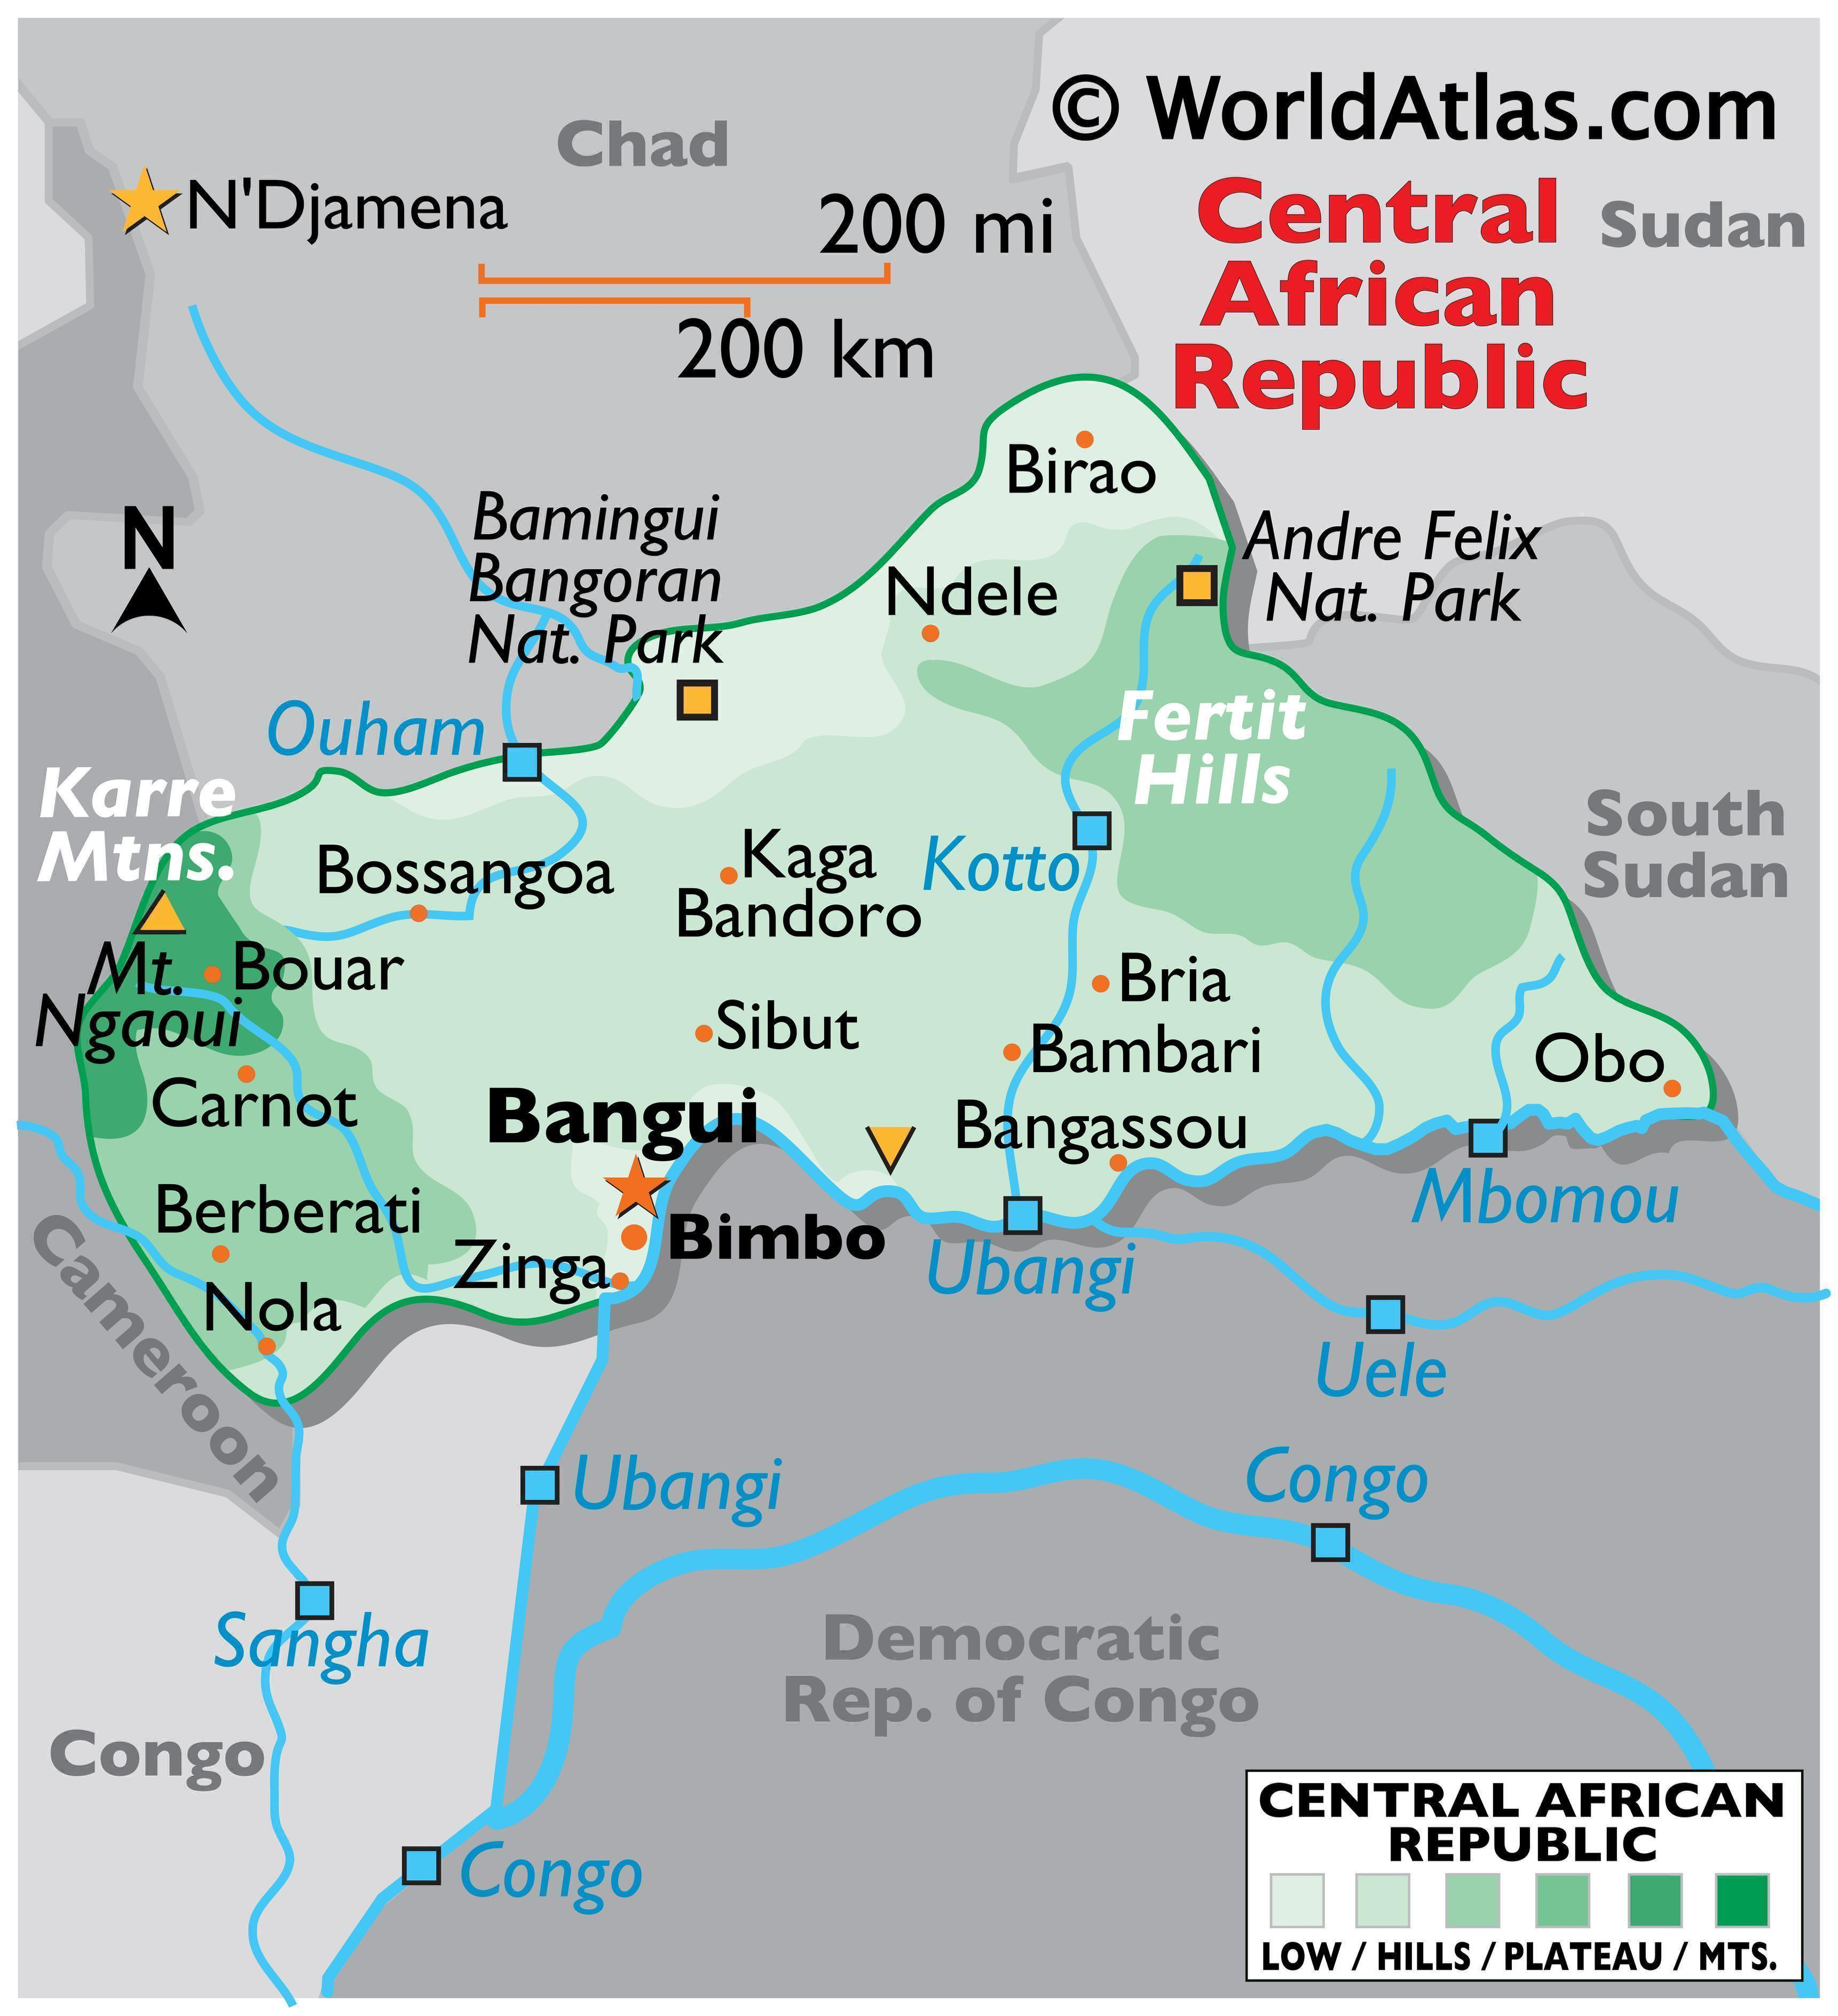 Physical Map of Central African Republic showing state boundaries, relief, major rivers, extreme points, national parks, etc.